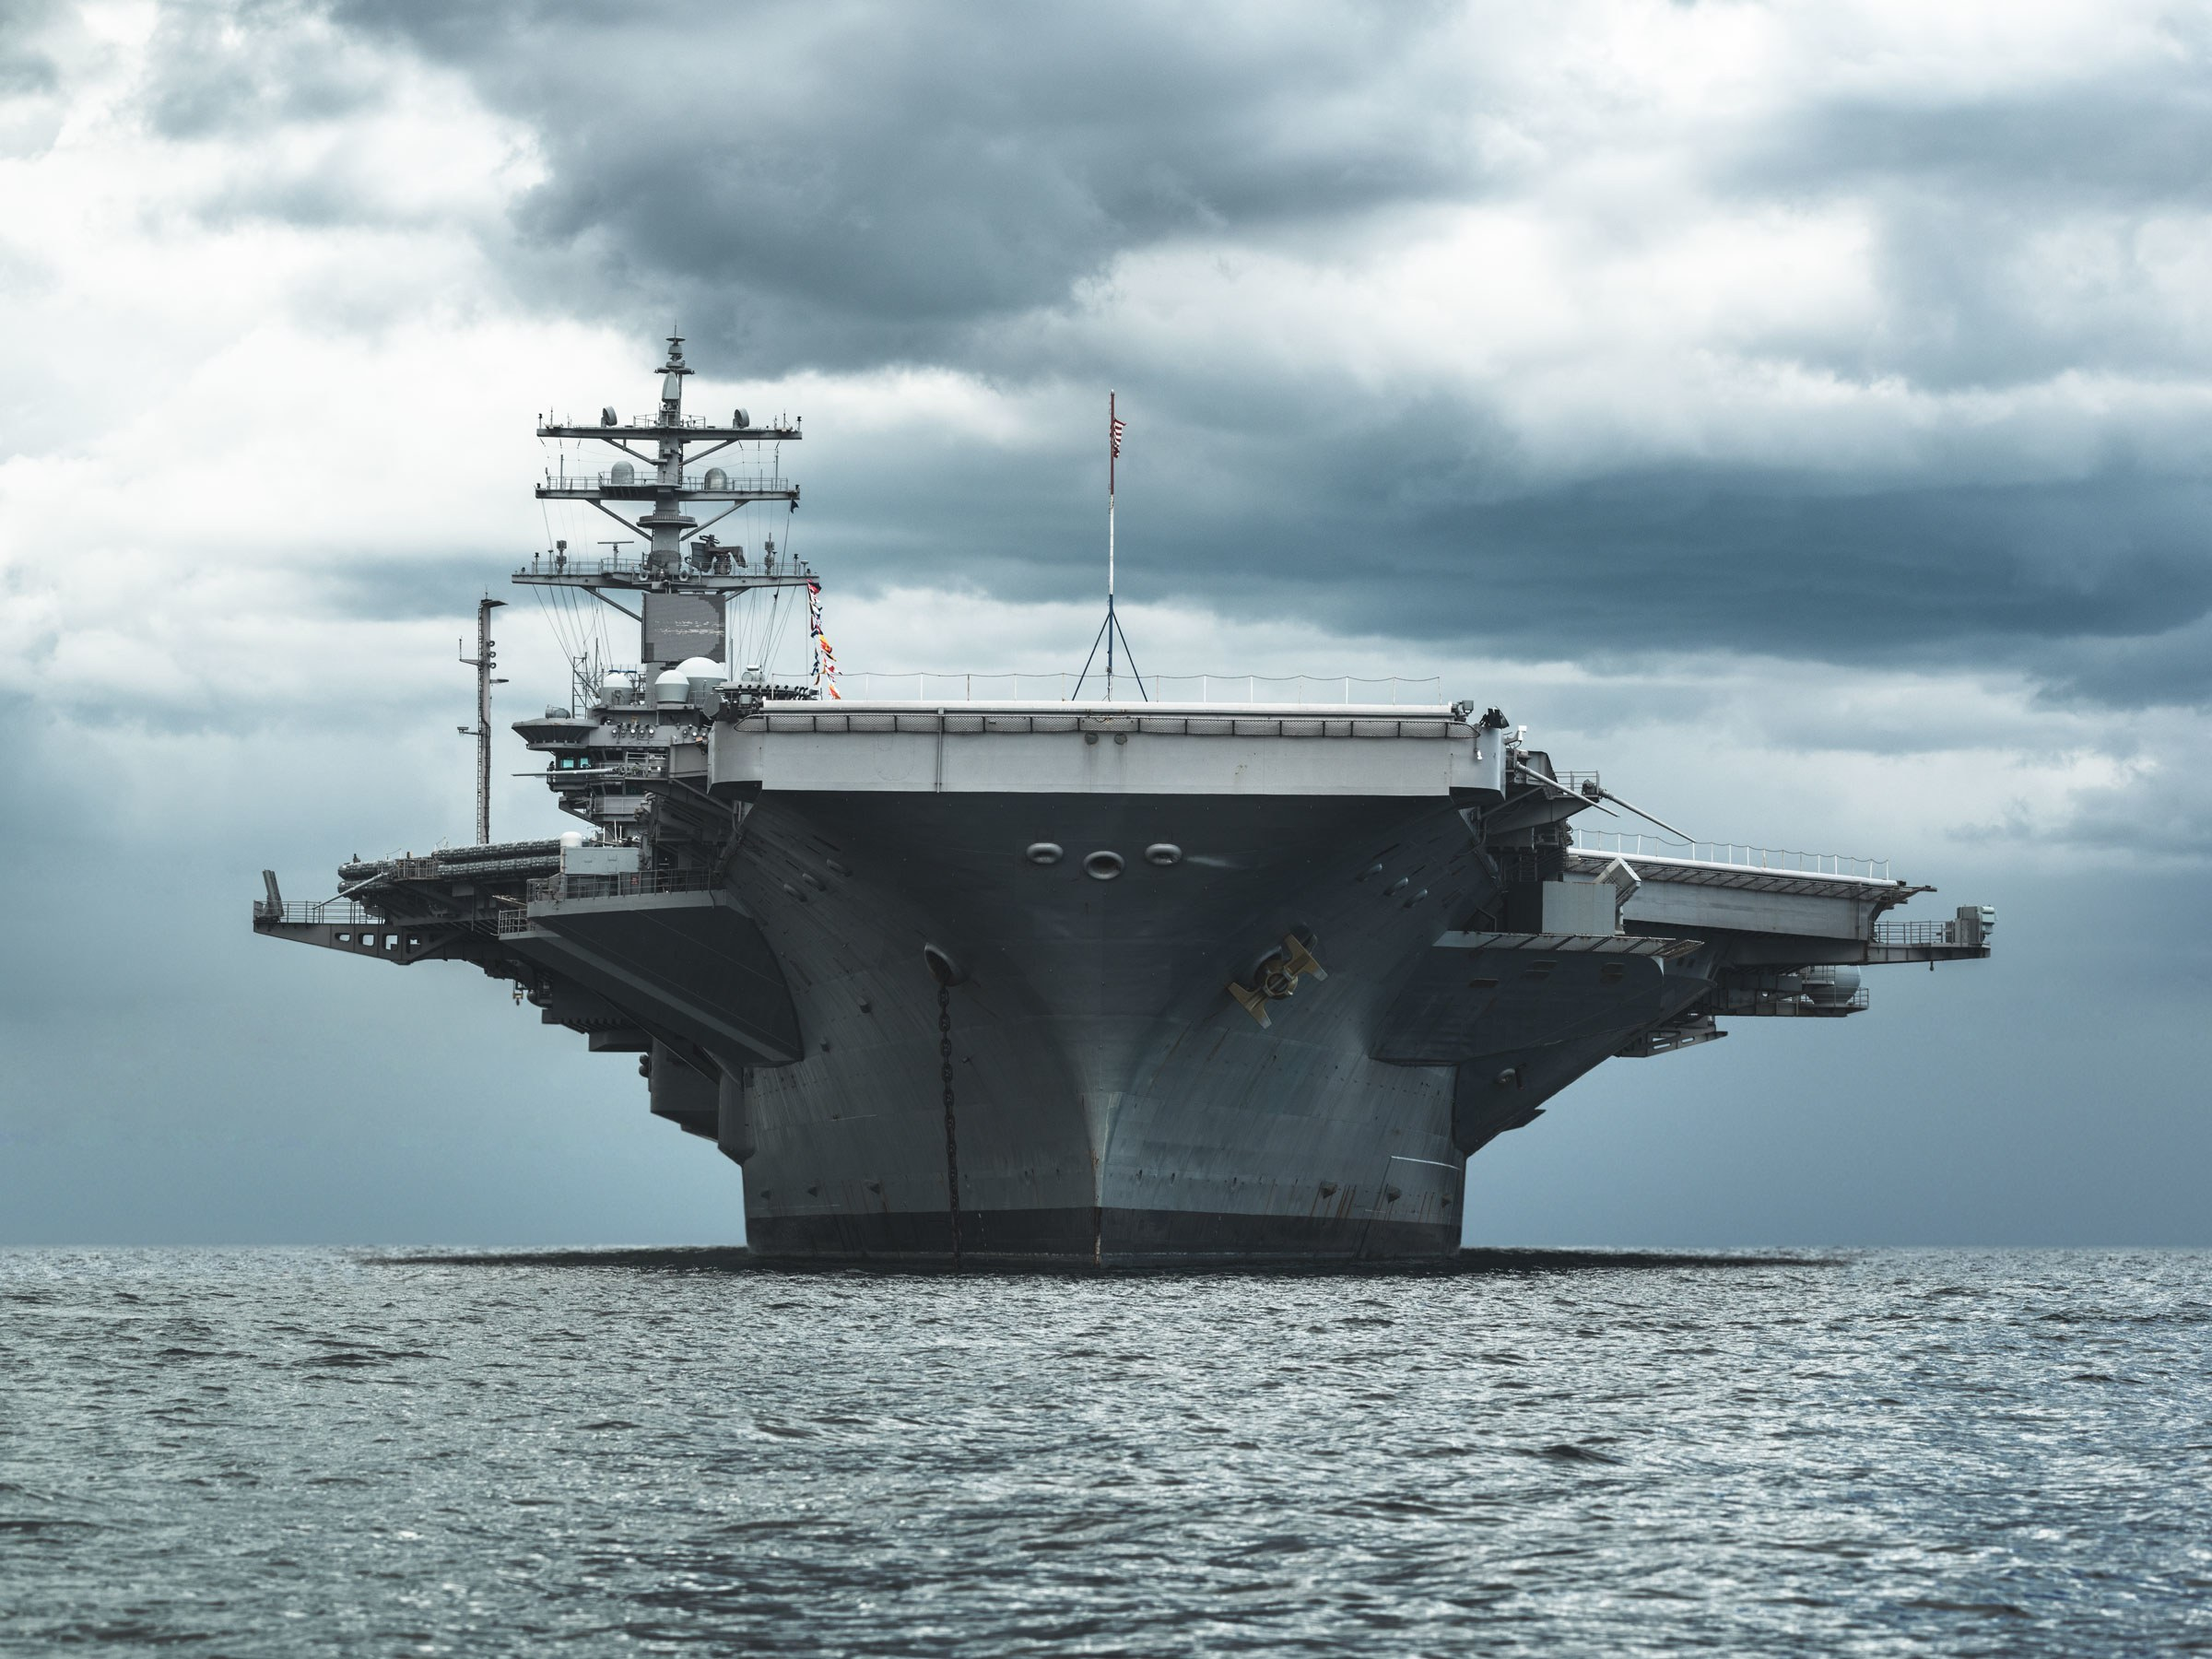 Launch an 80,000-Pound Sled off an Aircraft Carrier? Sure!